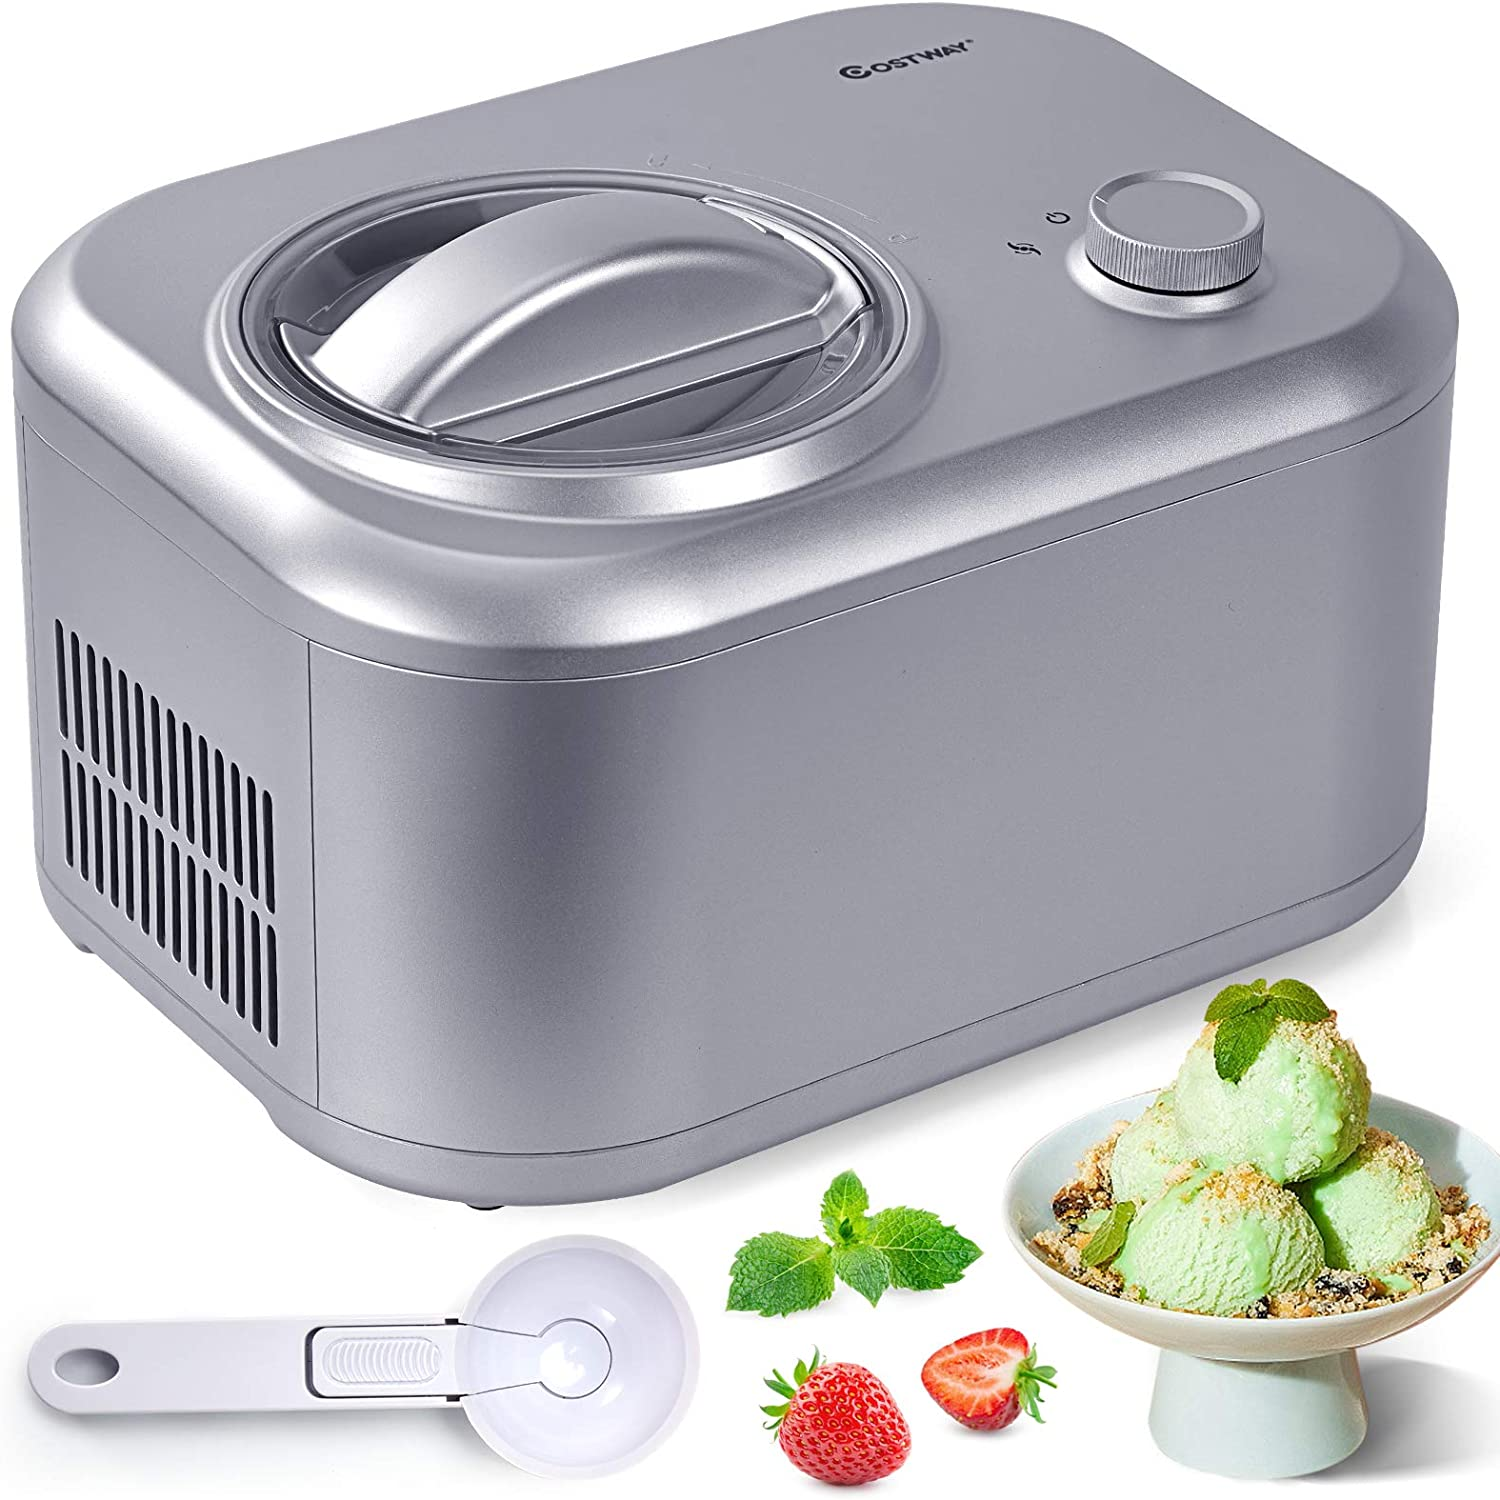 ARLIME Automatic Ice Challenge the lowest price of Japan ☆ Cream Maker Compression 1.1-Q Cooling with Max 40% OFF